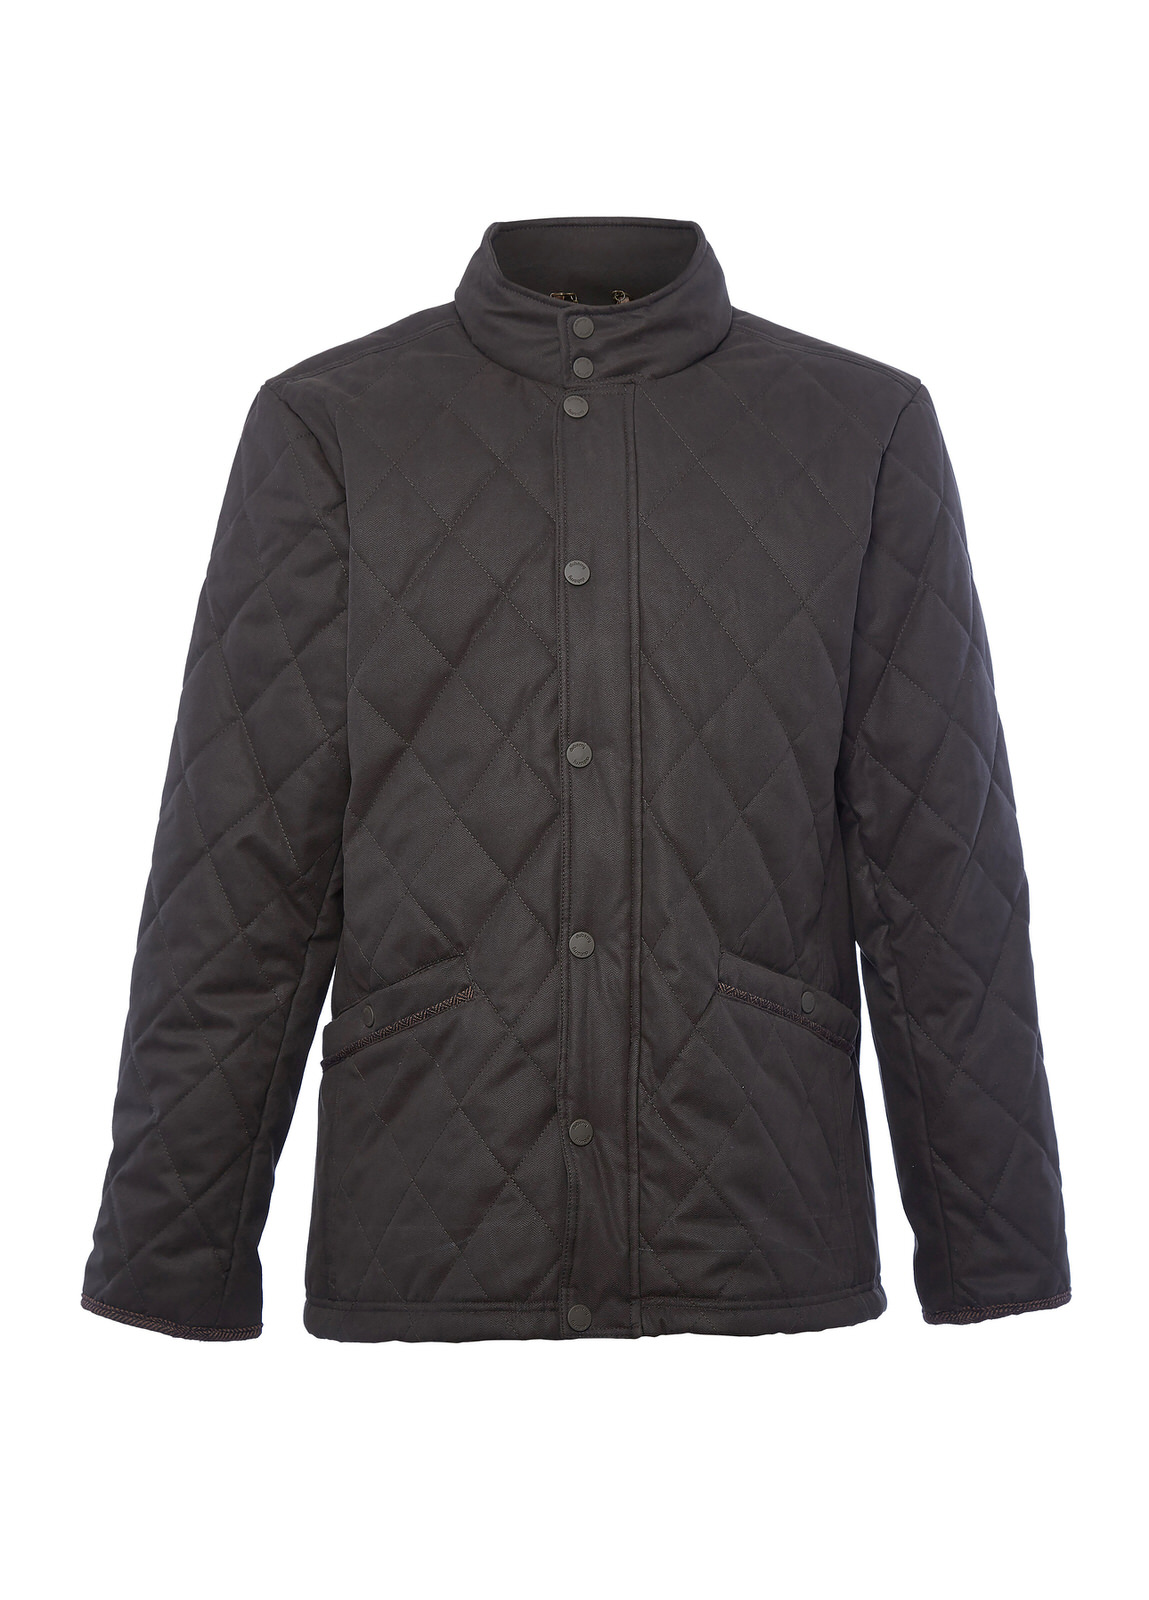 Bantry_Quilted_Jacket_Verdigris_Image_1